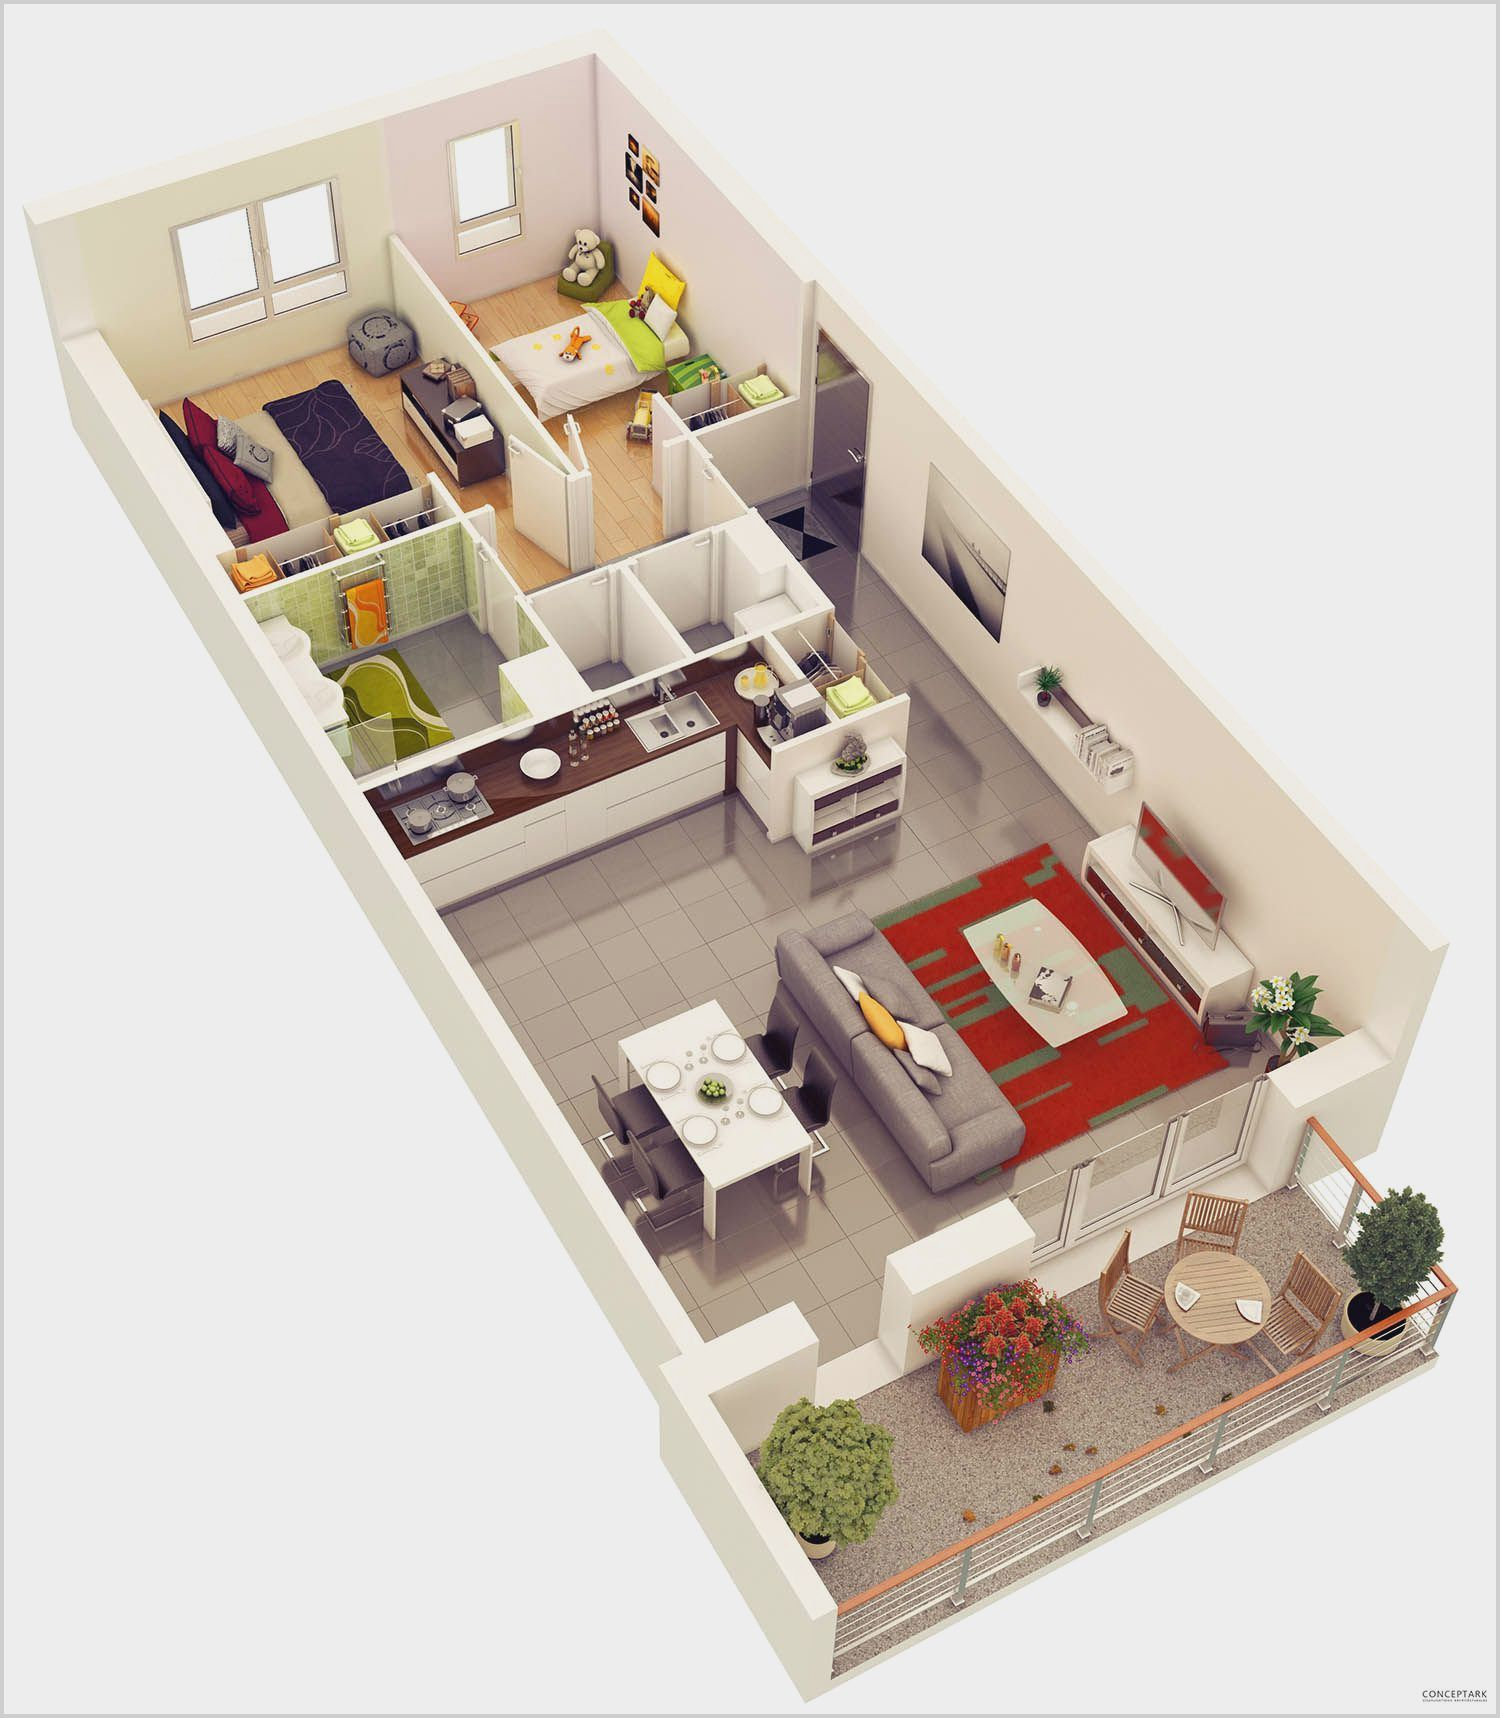 2 Bedroom Flat Interior Design In India in 2020 (With ...